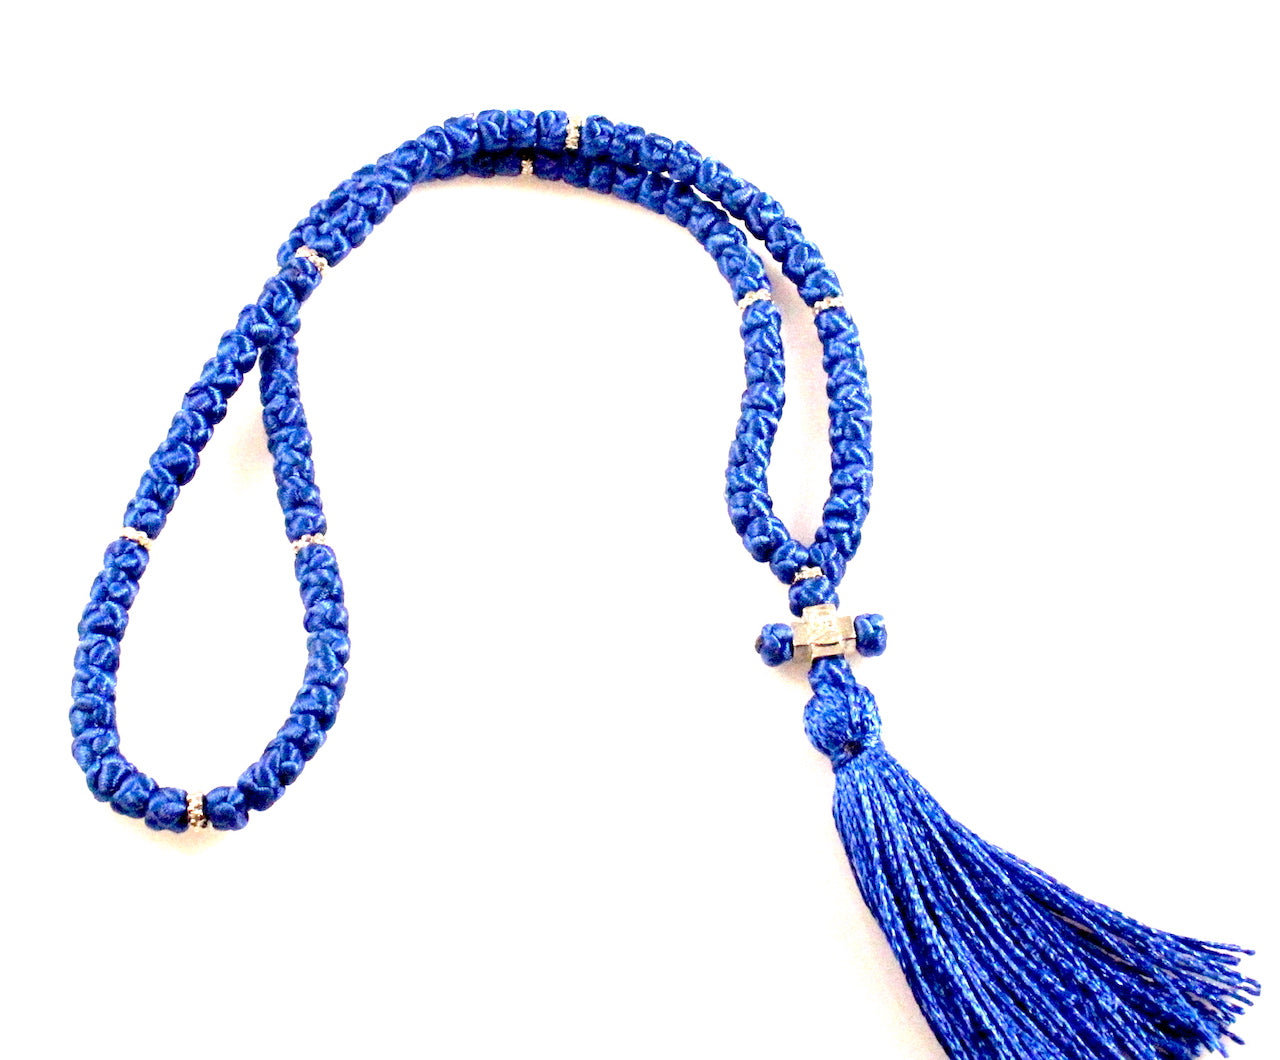 Extra Long Orthodox Prayer Rope with 100 knots in Multiple Colors